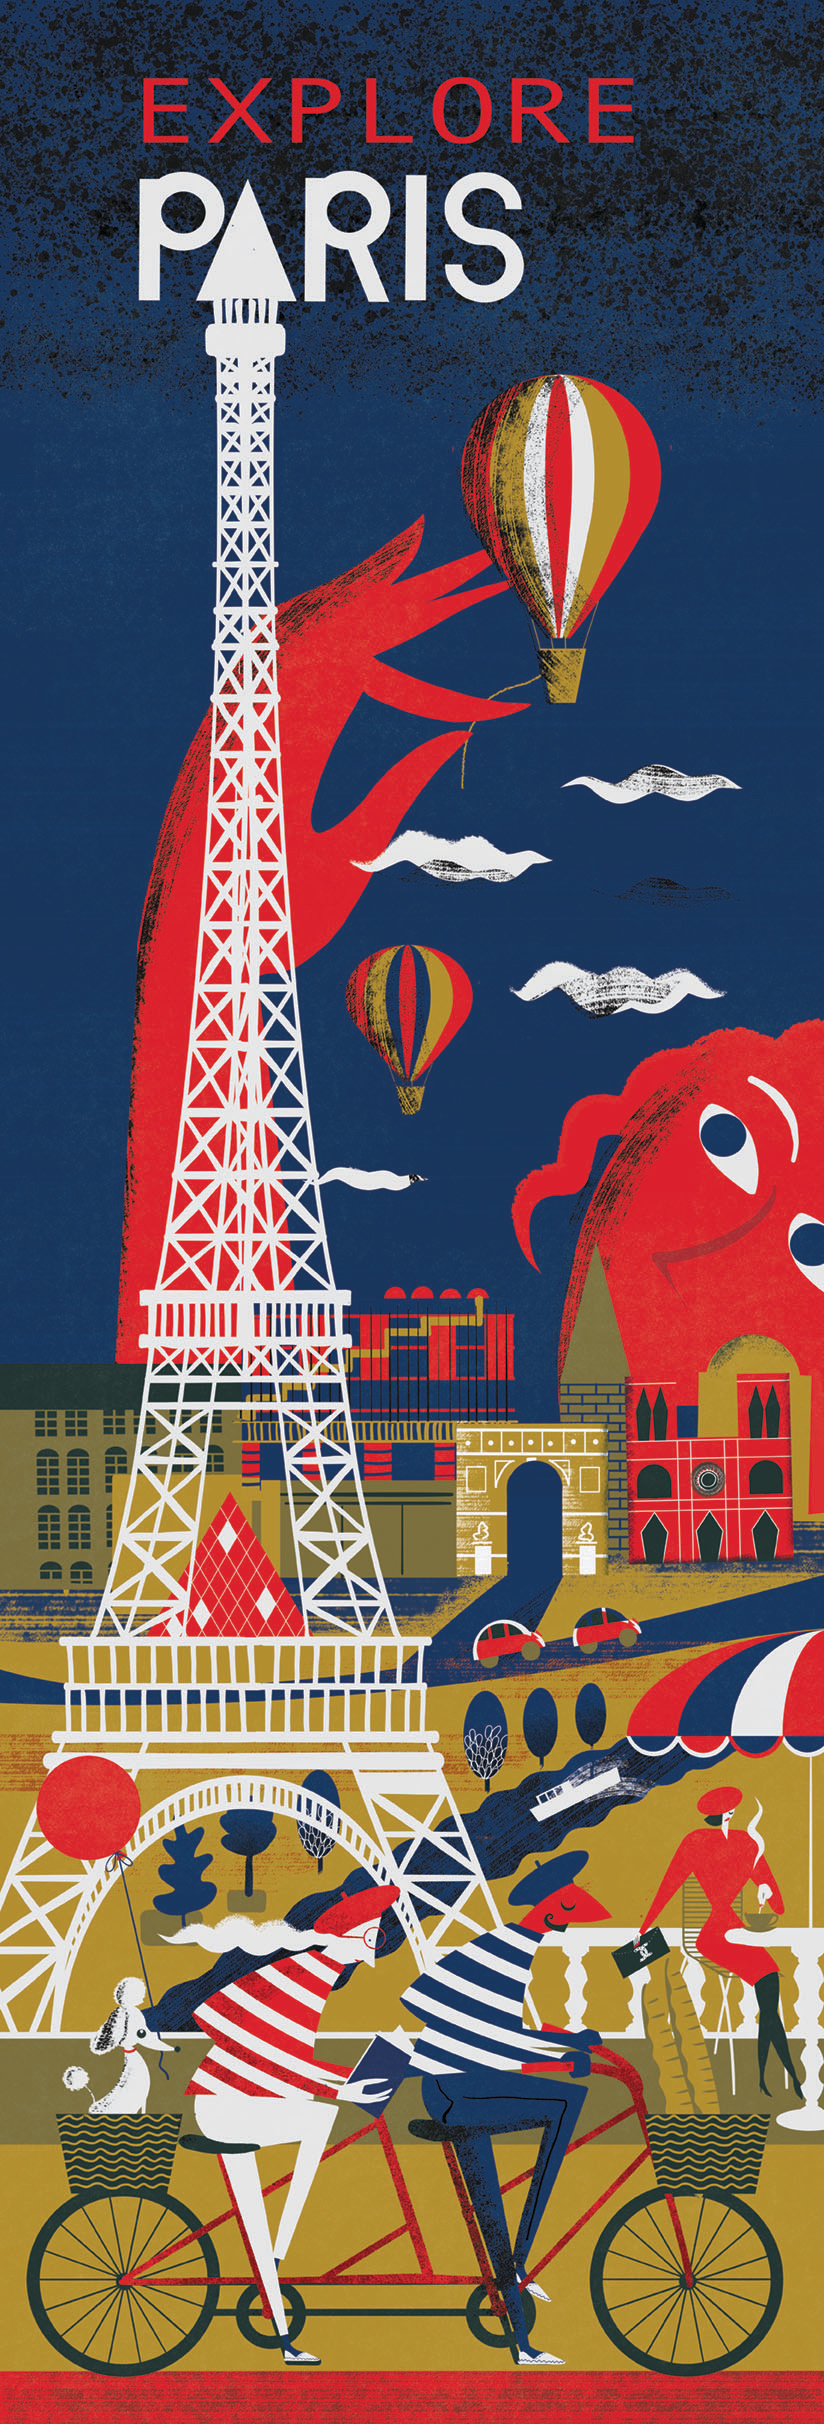 Explore Paris, Let's Explore, Paris, City Breaks, France,Tourism, Illustration, Poster Illustration,